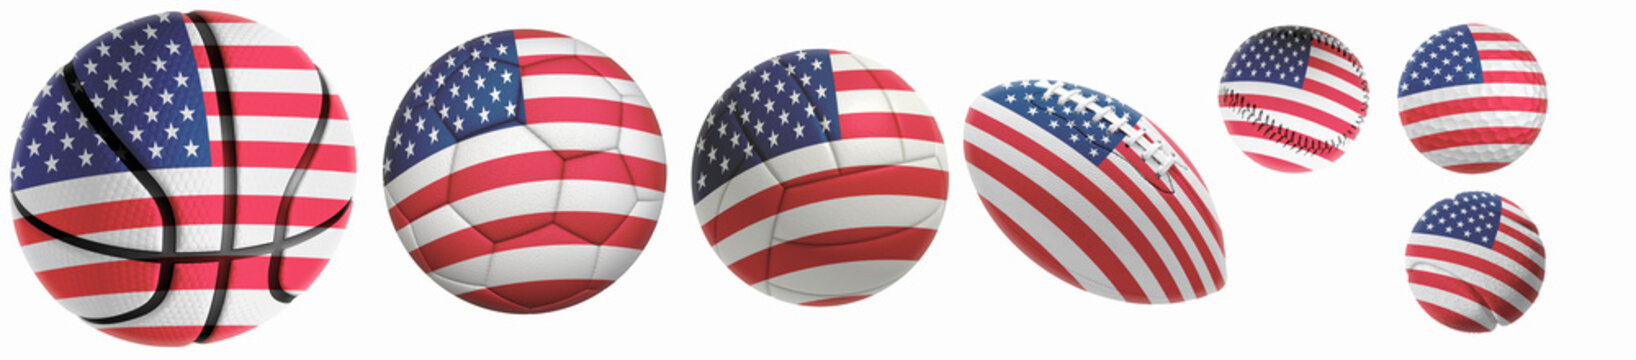 US flag superimposed on balls: Golf, basketball, volleyball, soccer, tennis, rugby, baseball isolated on a white background. 3d rendering